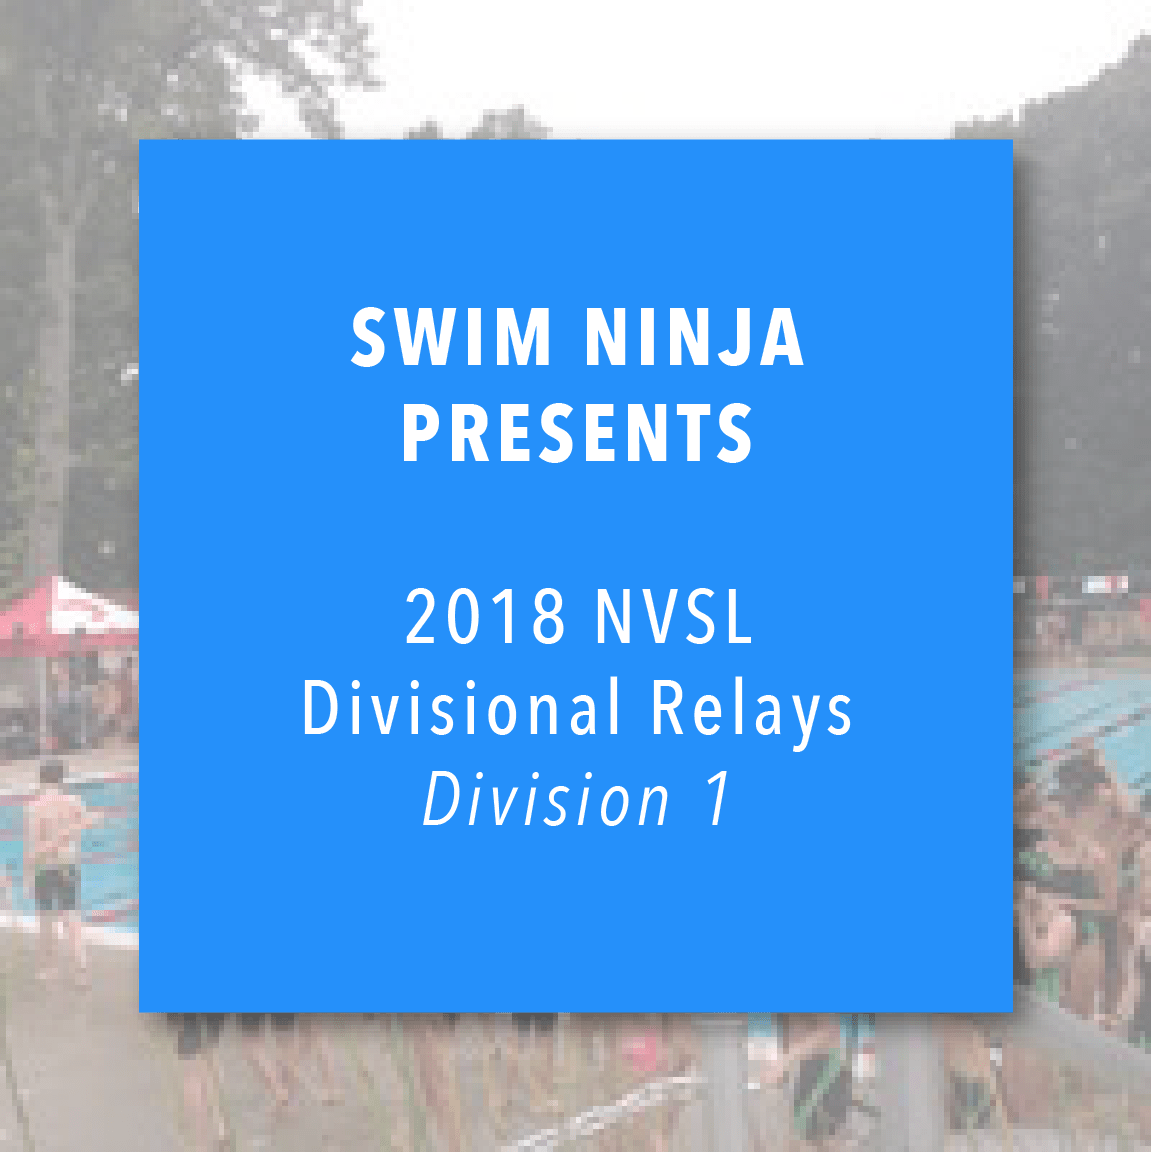 NVSL Division 1 Relay Carnival Live Stream